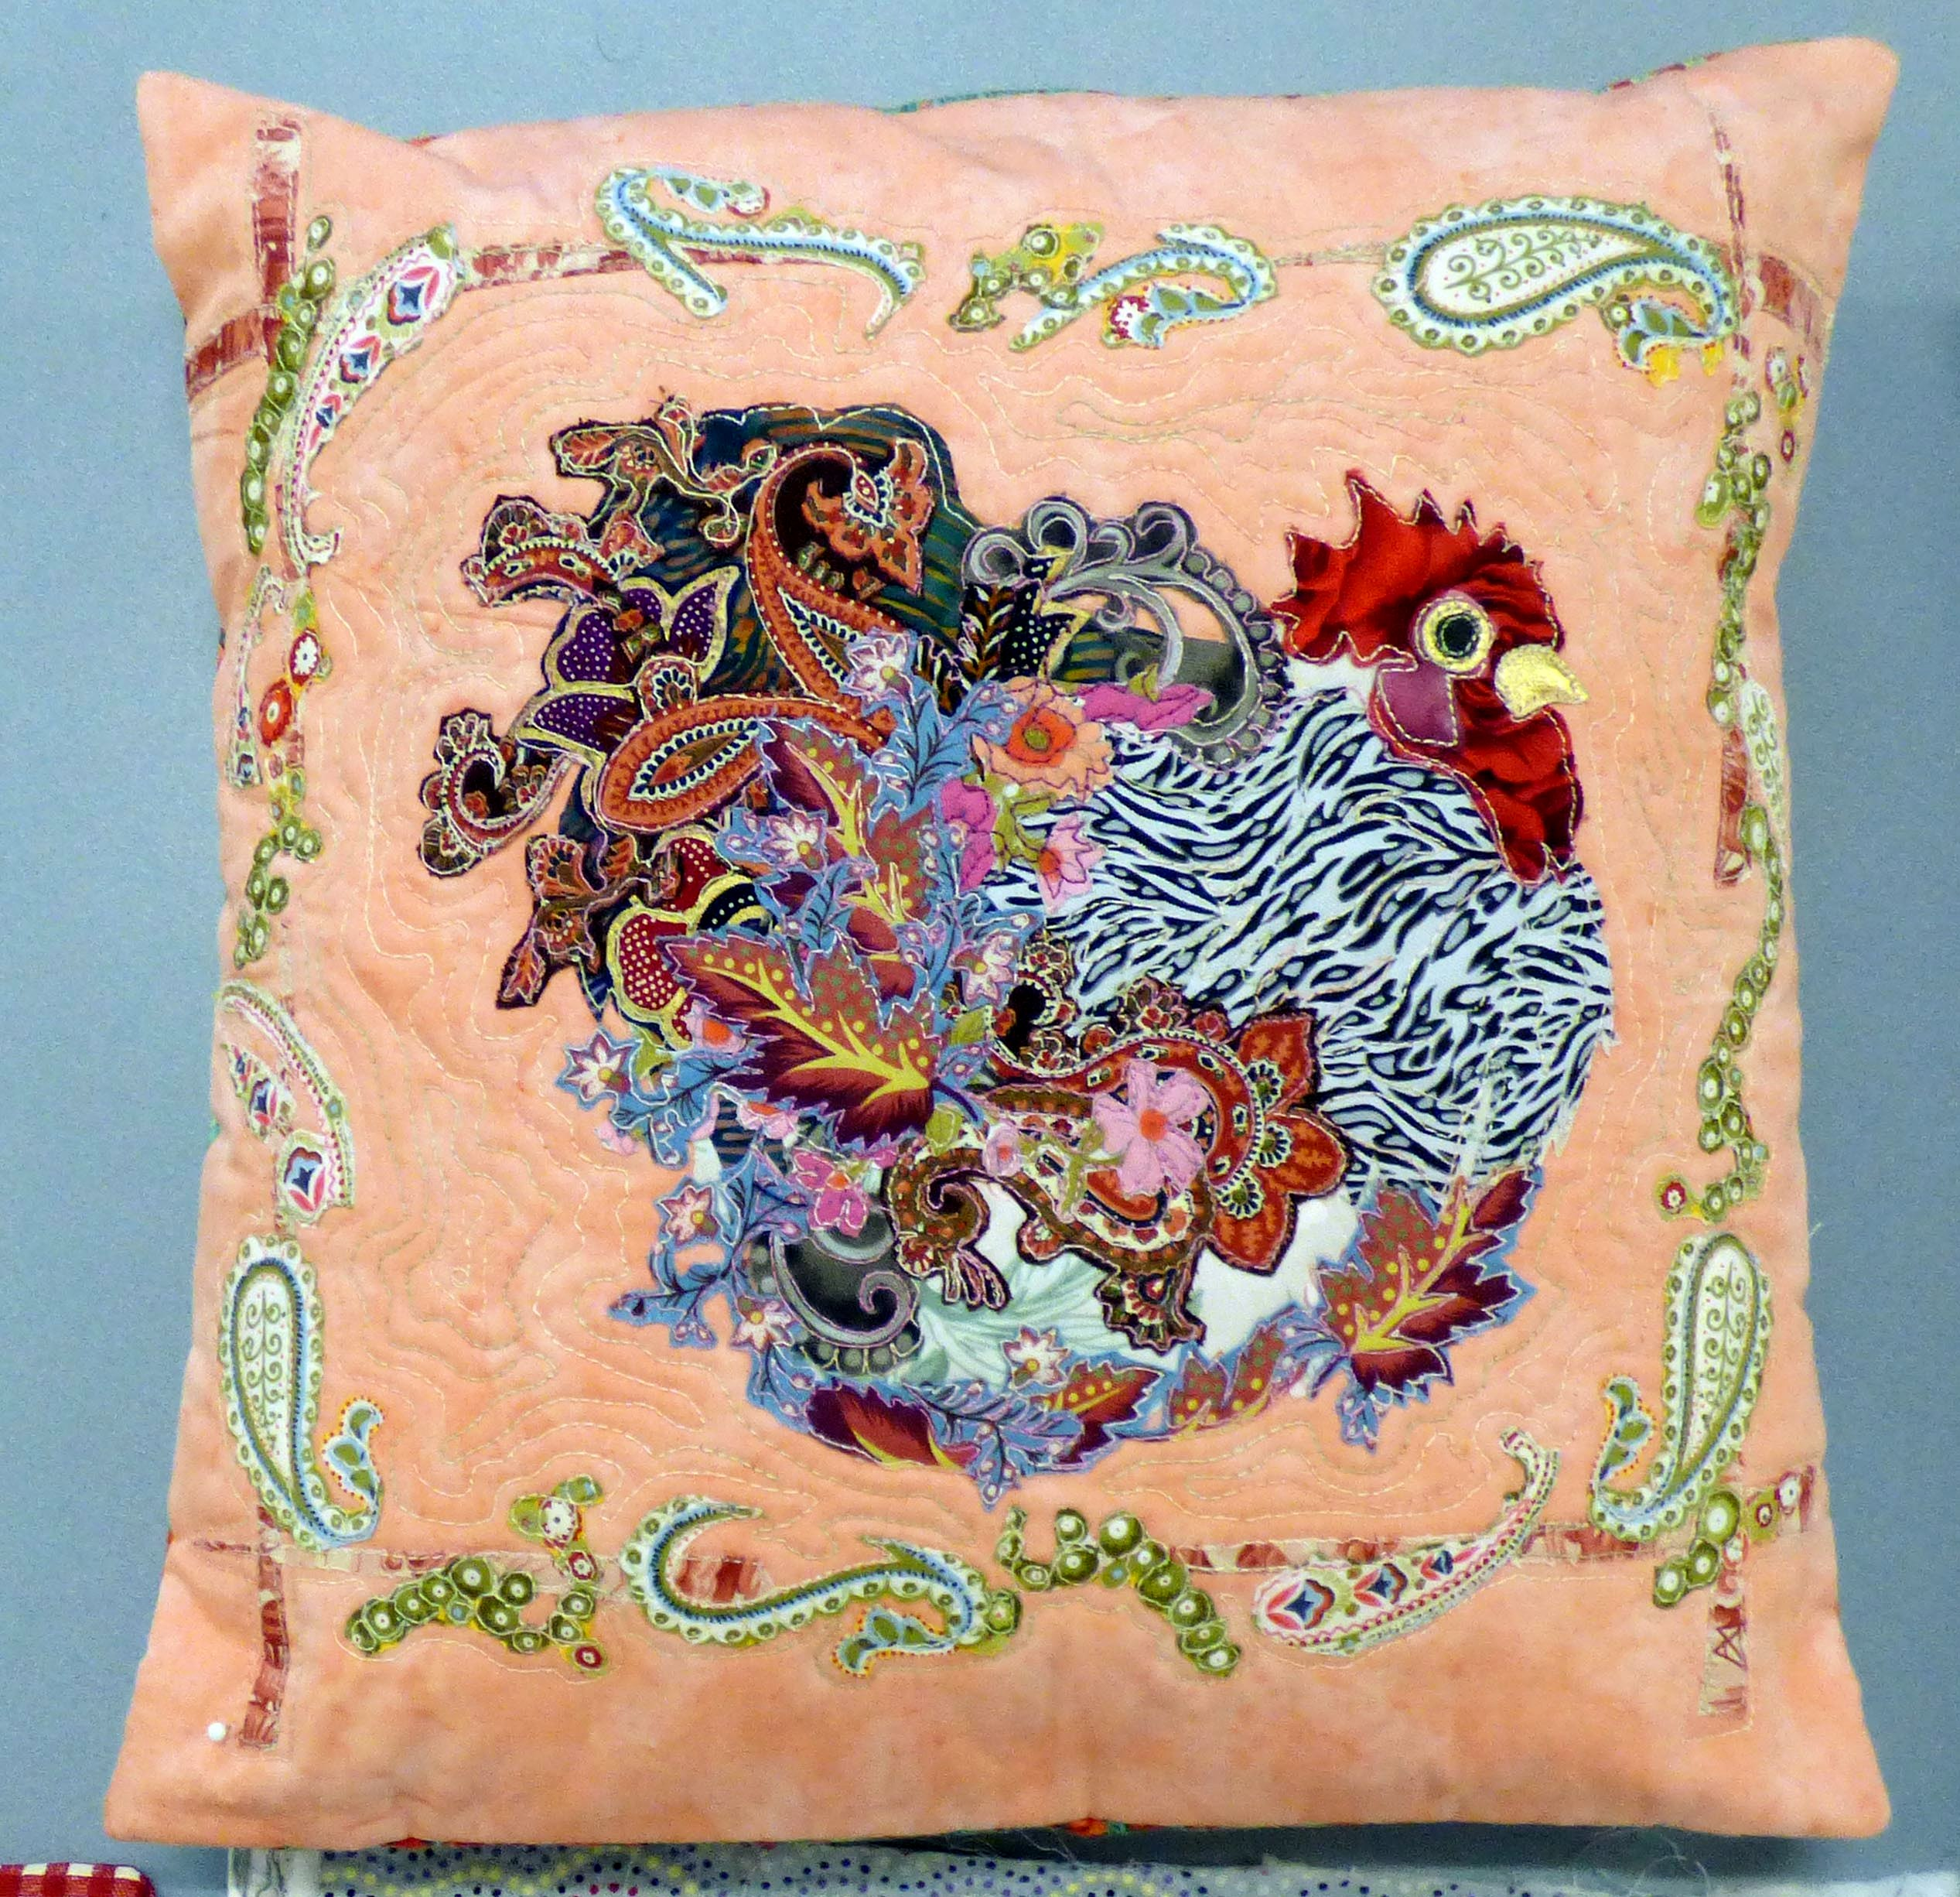 cushion by Lizzie Wall at Raw Edge Applique workshop with Lizzie Wall